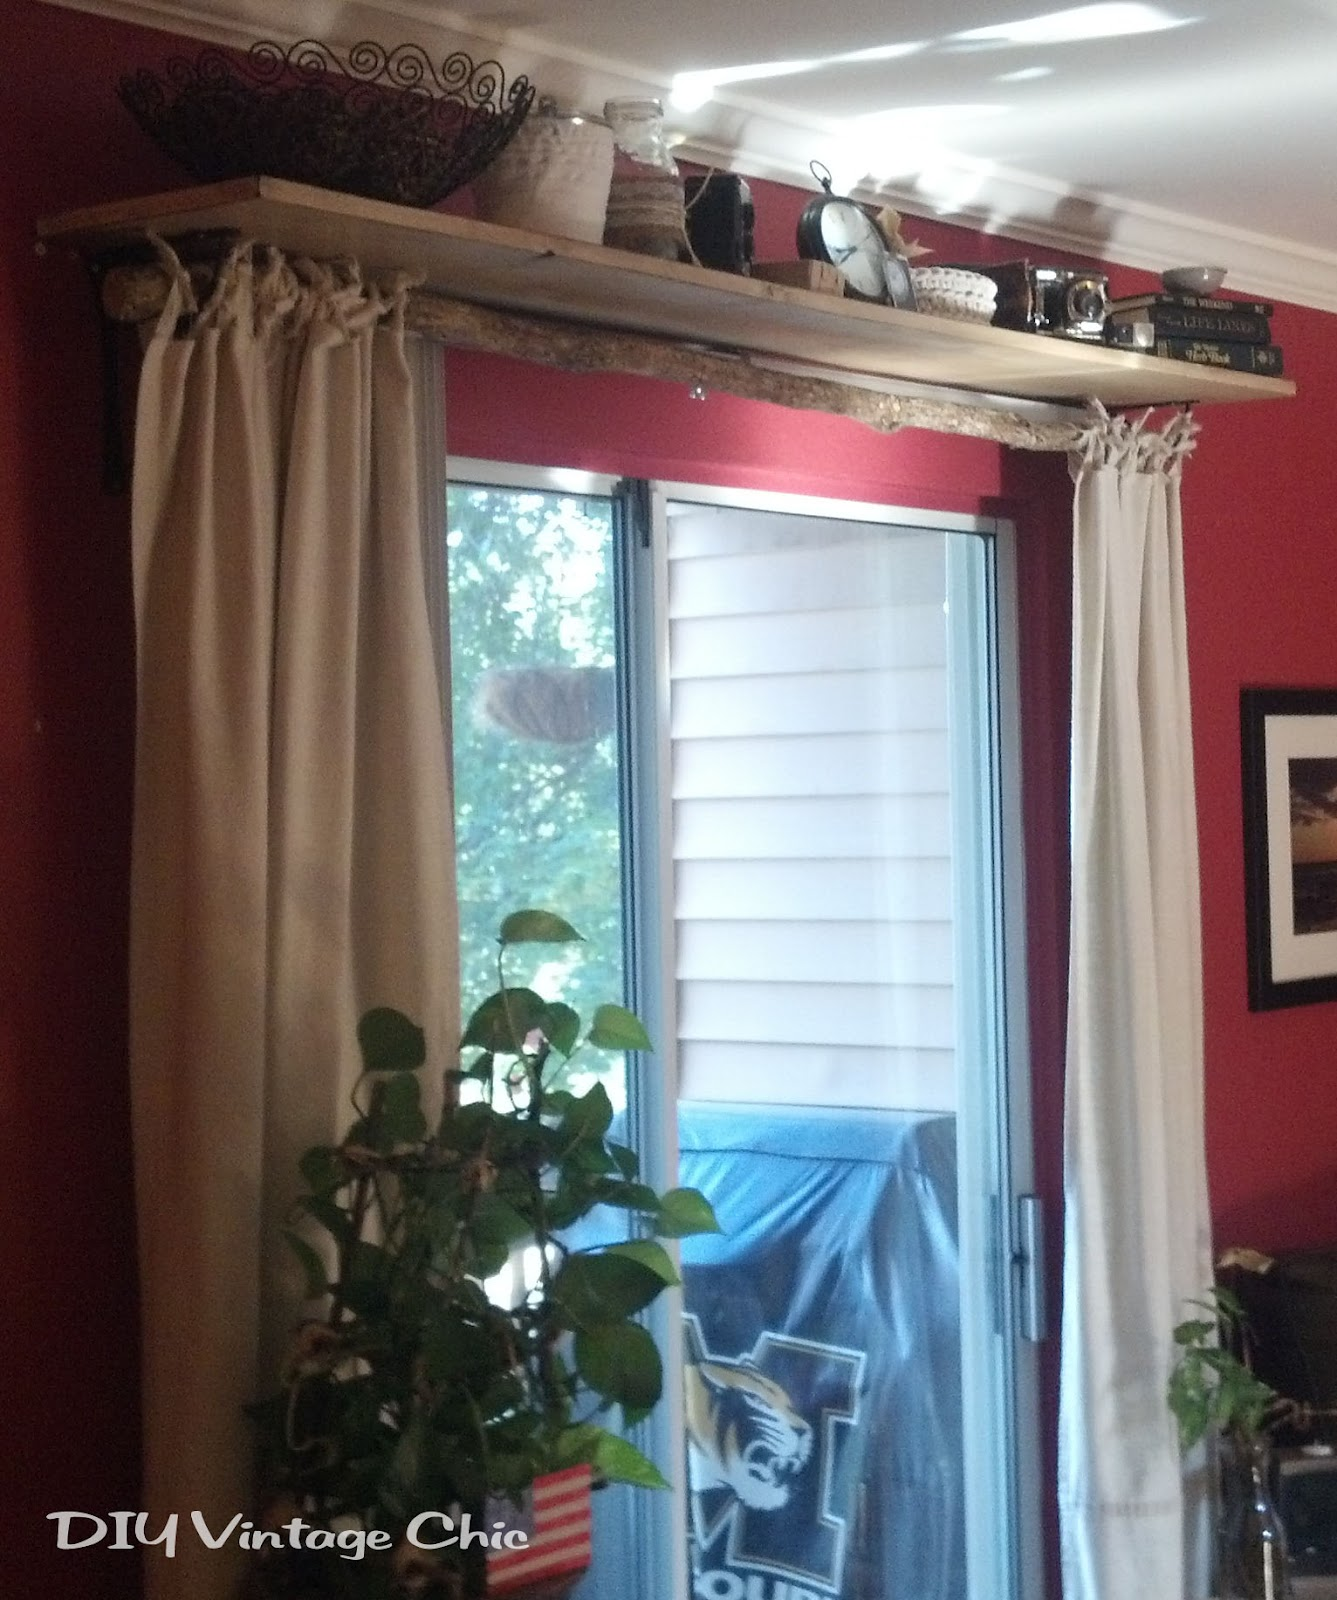 DIY Vintage Chic: No Sew Curtains And Window Treatment